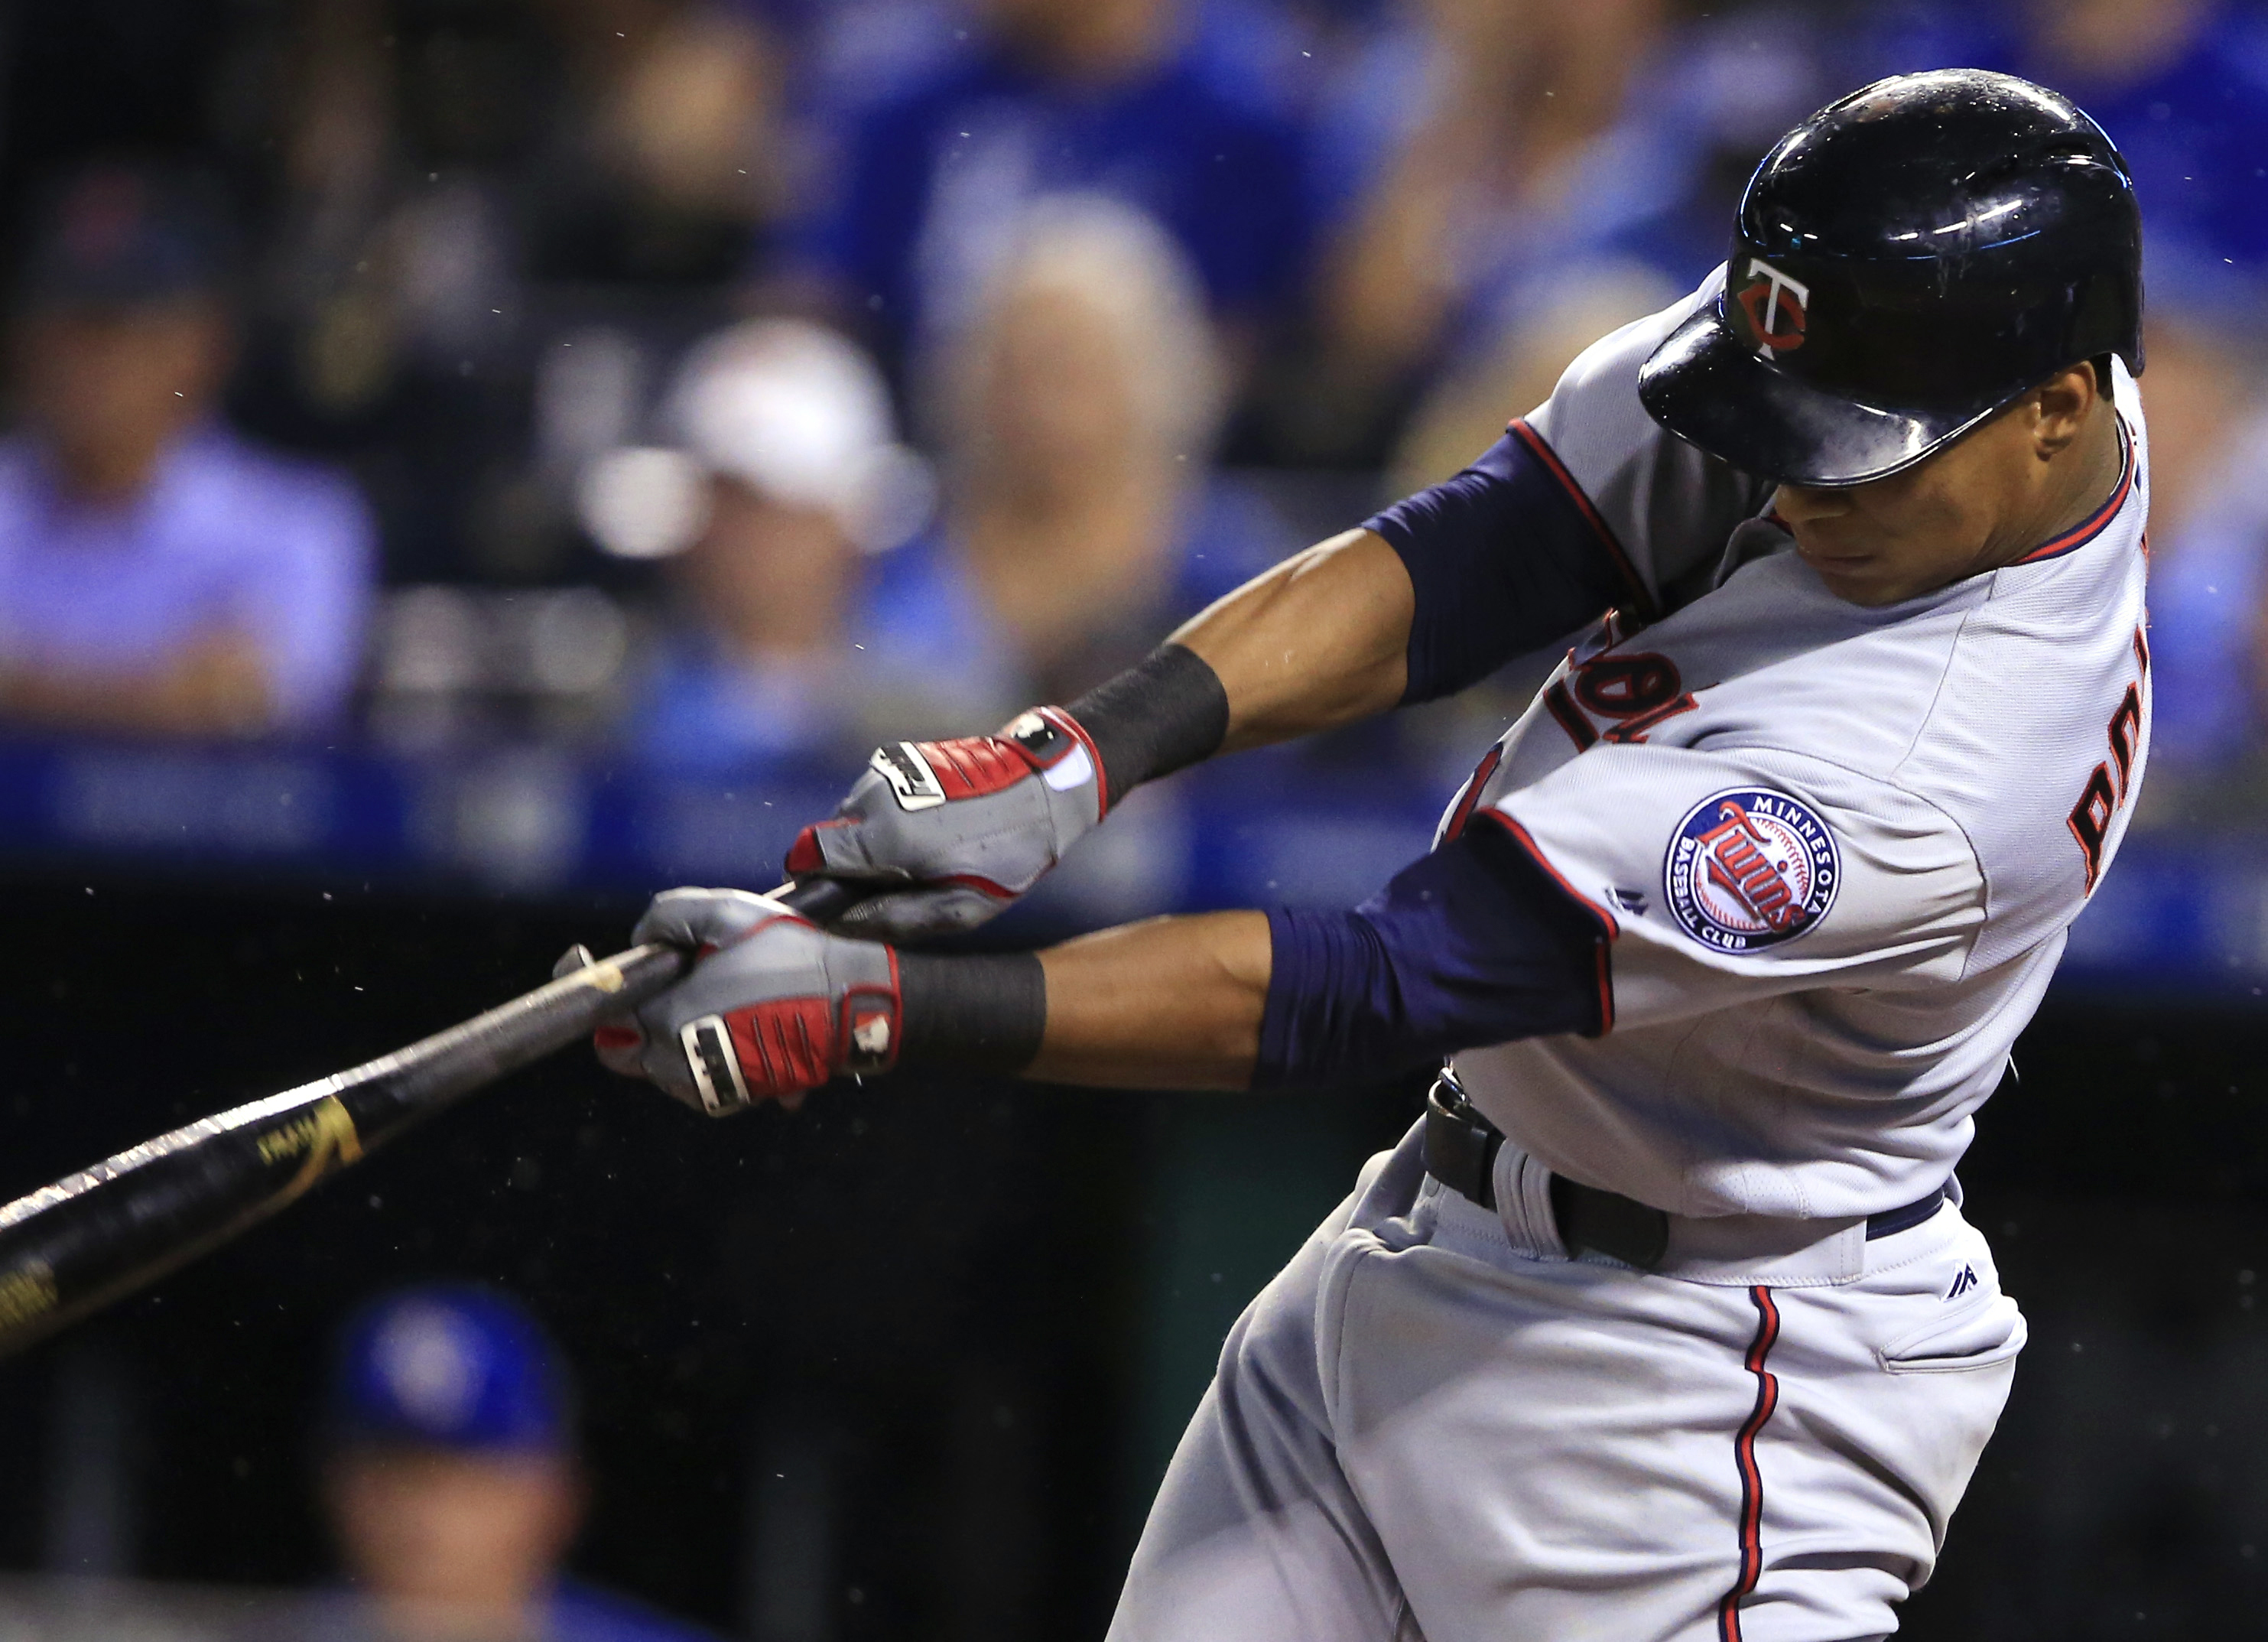 Minnesota Twins' Jorge Polanco hits a two-run double off Kansas City Royals starting pitcher Edinson Volquez during the fifth inning of a baseball game at Kauffman Stadium in Kansas City, Mo., Friday, Aug. 19, 2016. (AP Photo/Orlin Wagner)